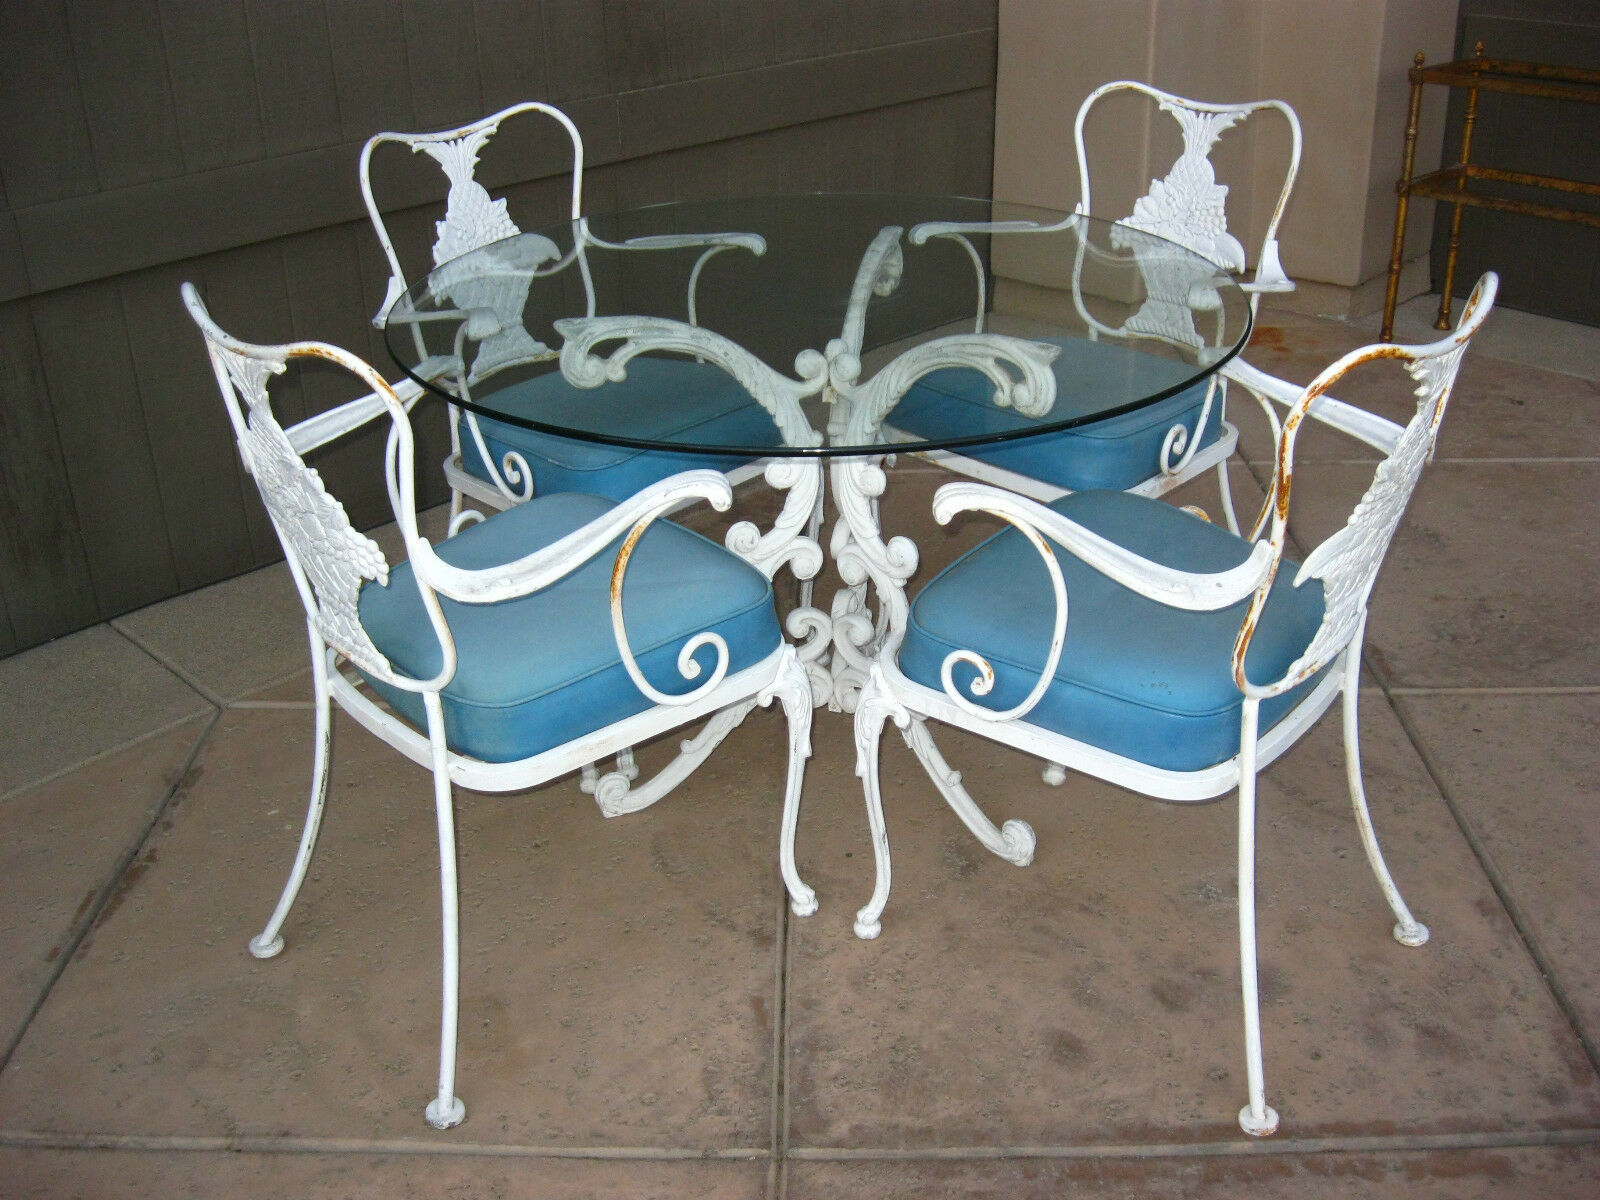 5 Piece Vintage PATIO FURNITURE SET Ornate Wrought Iron FRENCH COUNTRY COTTAG